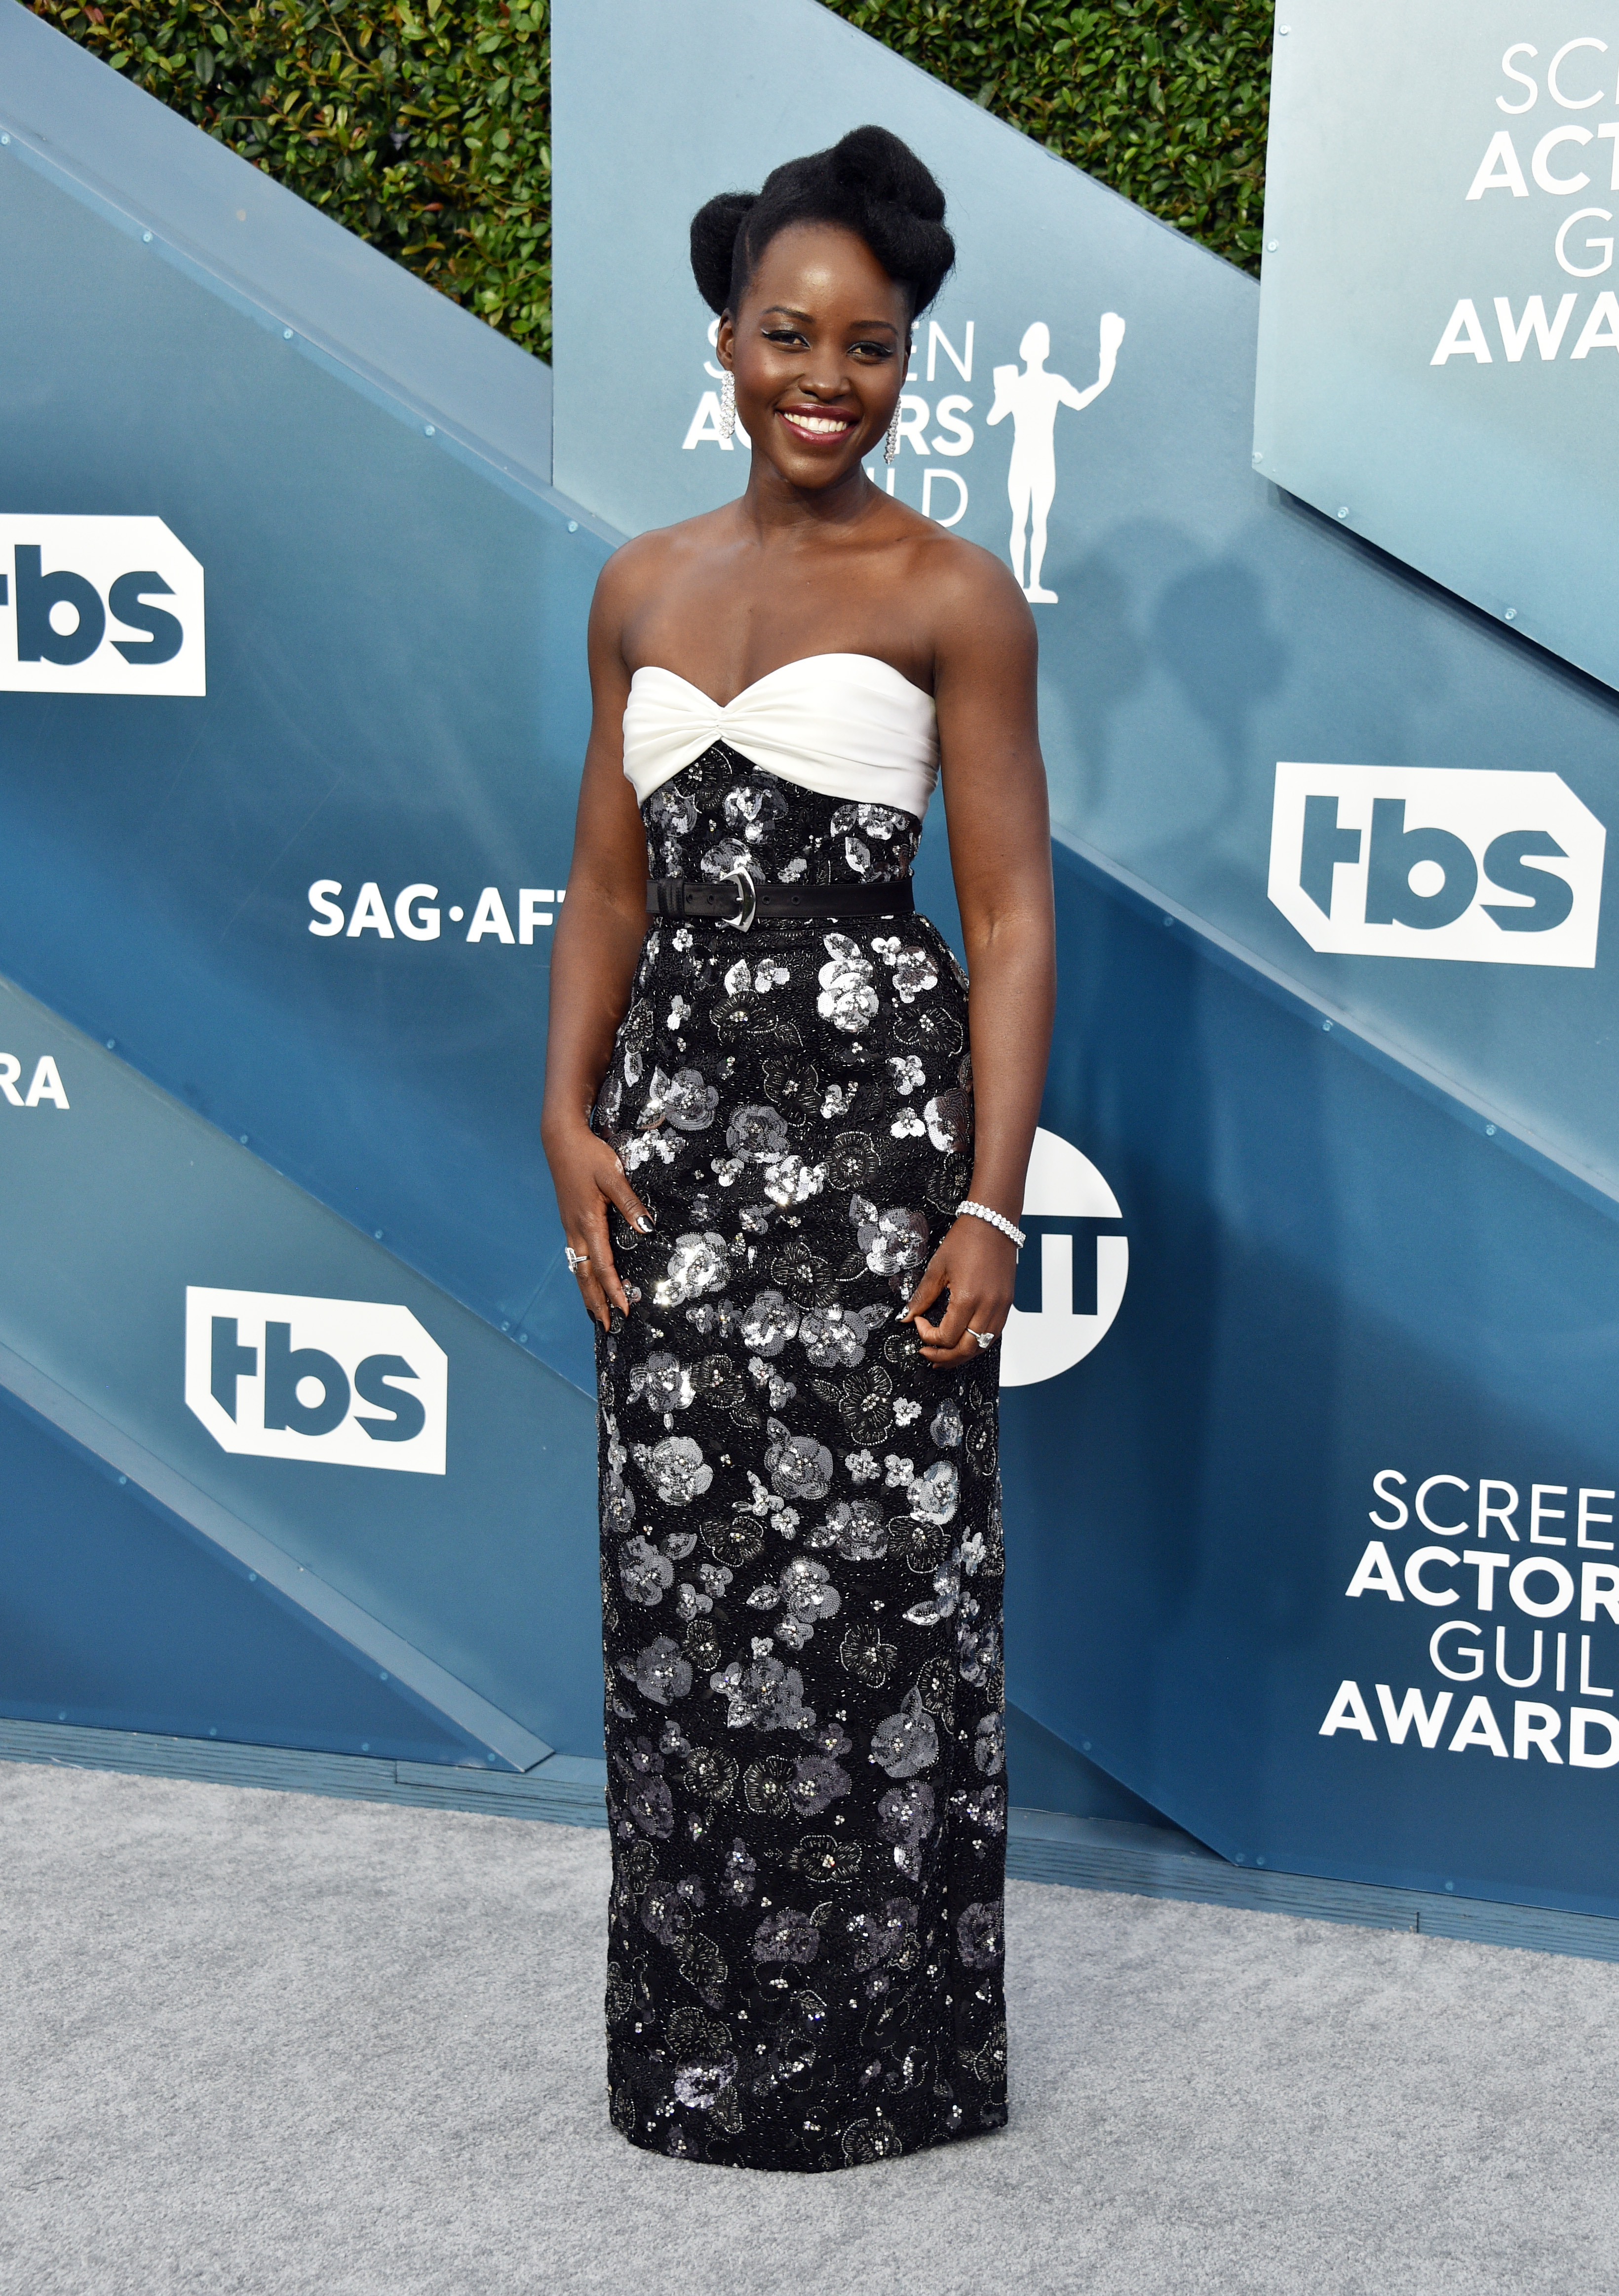 LOS ANGELES, CALIFORNIA - JANUARY 19: Lupita Nyong'o attends the 26th Annual Screen ActorsGuild Awards at The Shrine Auditorium on January 19, 2020 in Los Angeles, California. 721430 (Photo by Gregg DeGuire/Getty Images for Turner)